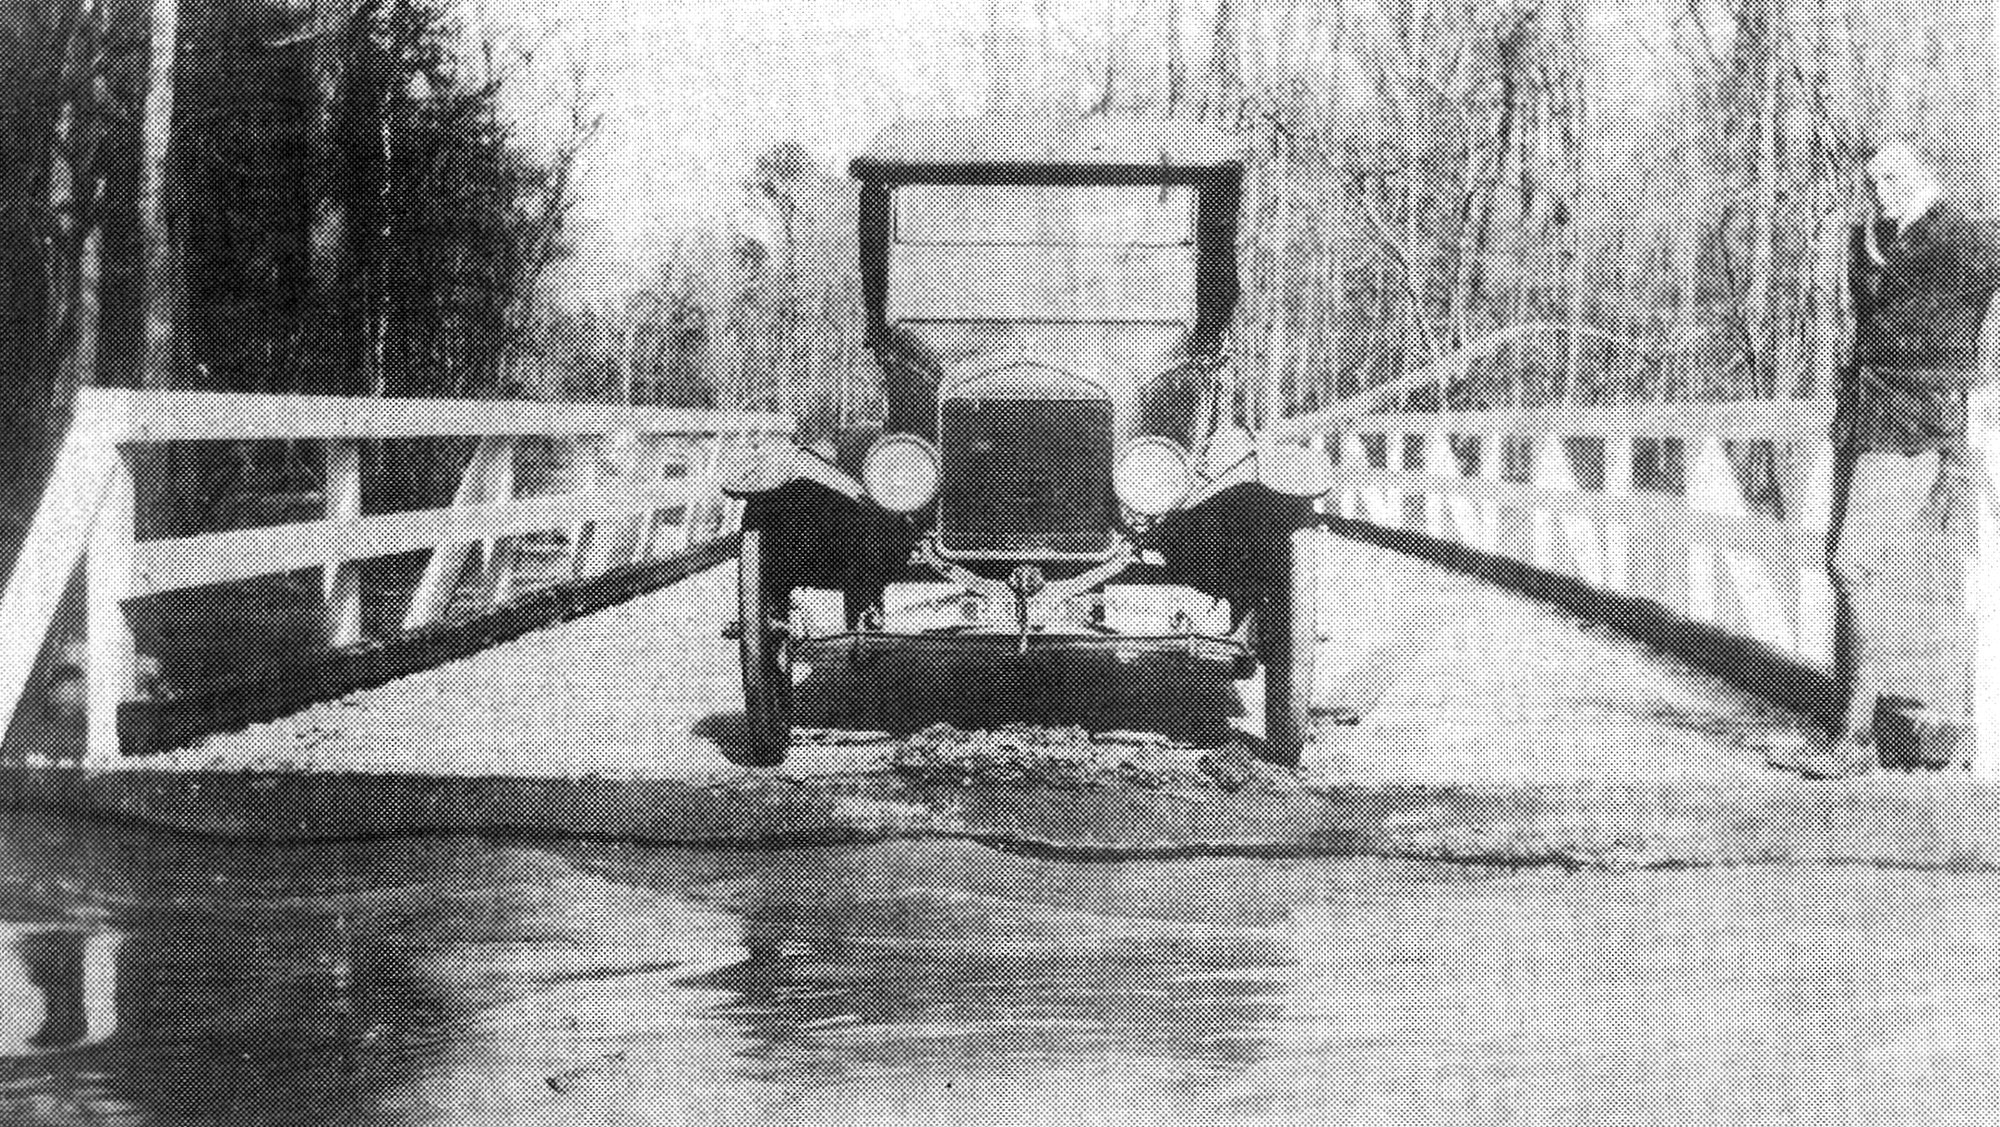 An early roadster waiting to be ferried across the Wateree River swamp in the early 20th century.